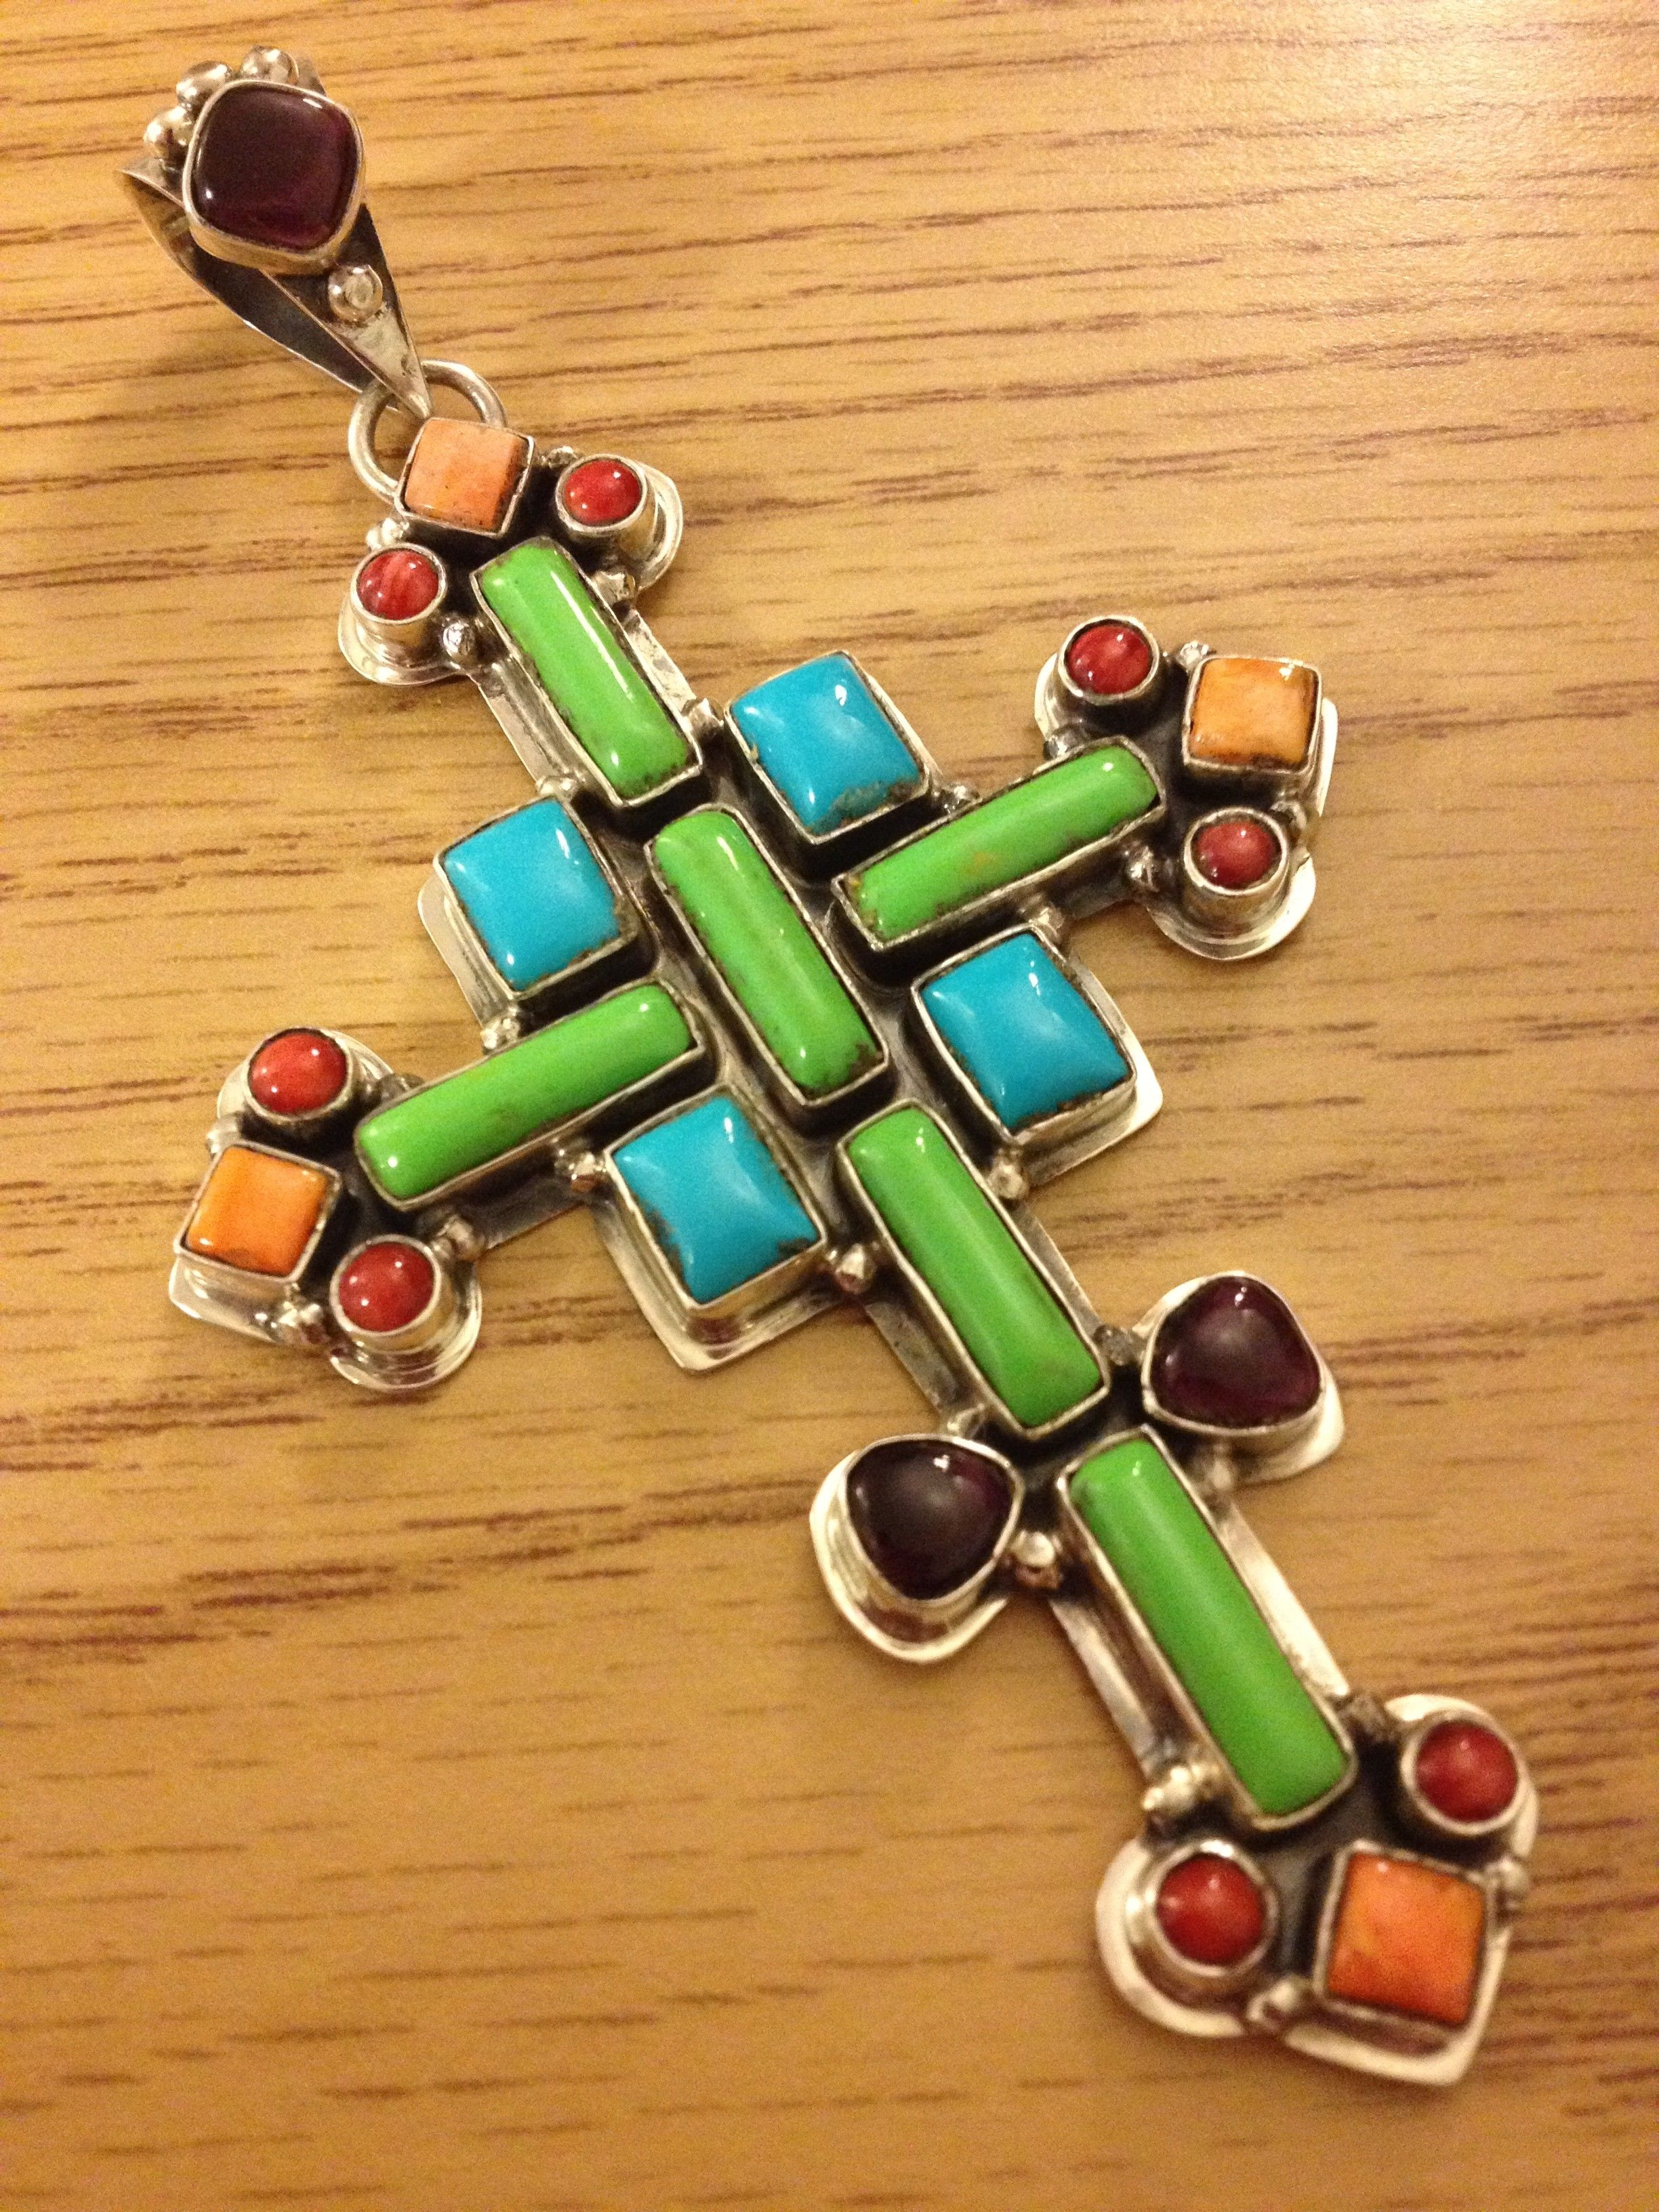 Roie Jaque 25 stones cross include gaspiate, turquoise, dark purple sugilite, red coral and orange spiney oyster